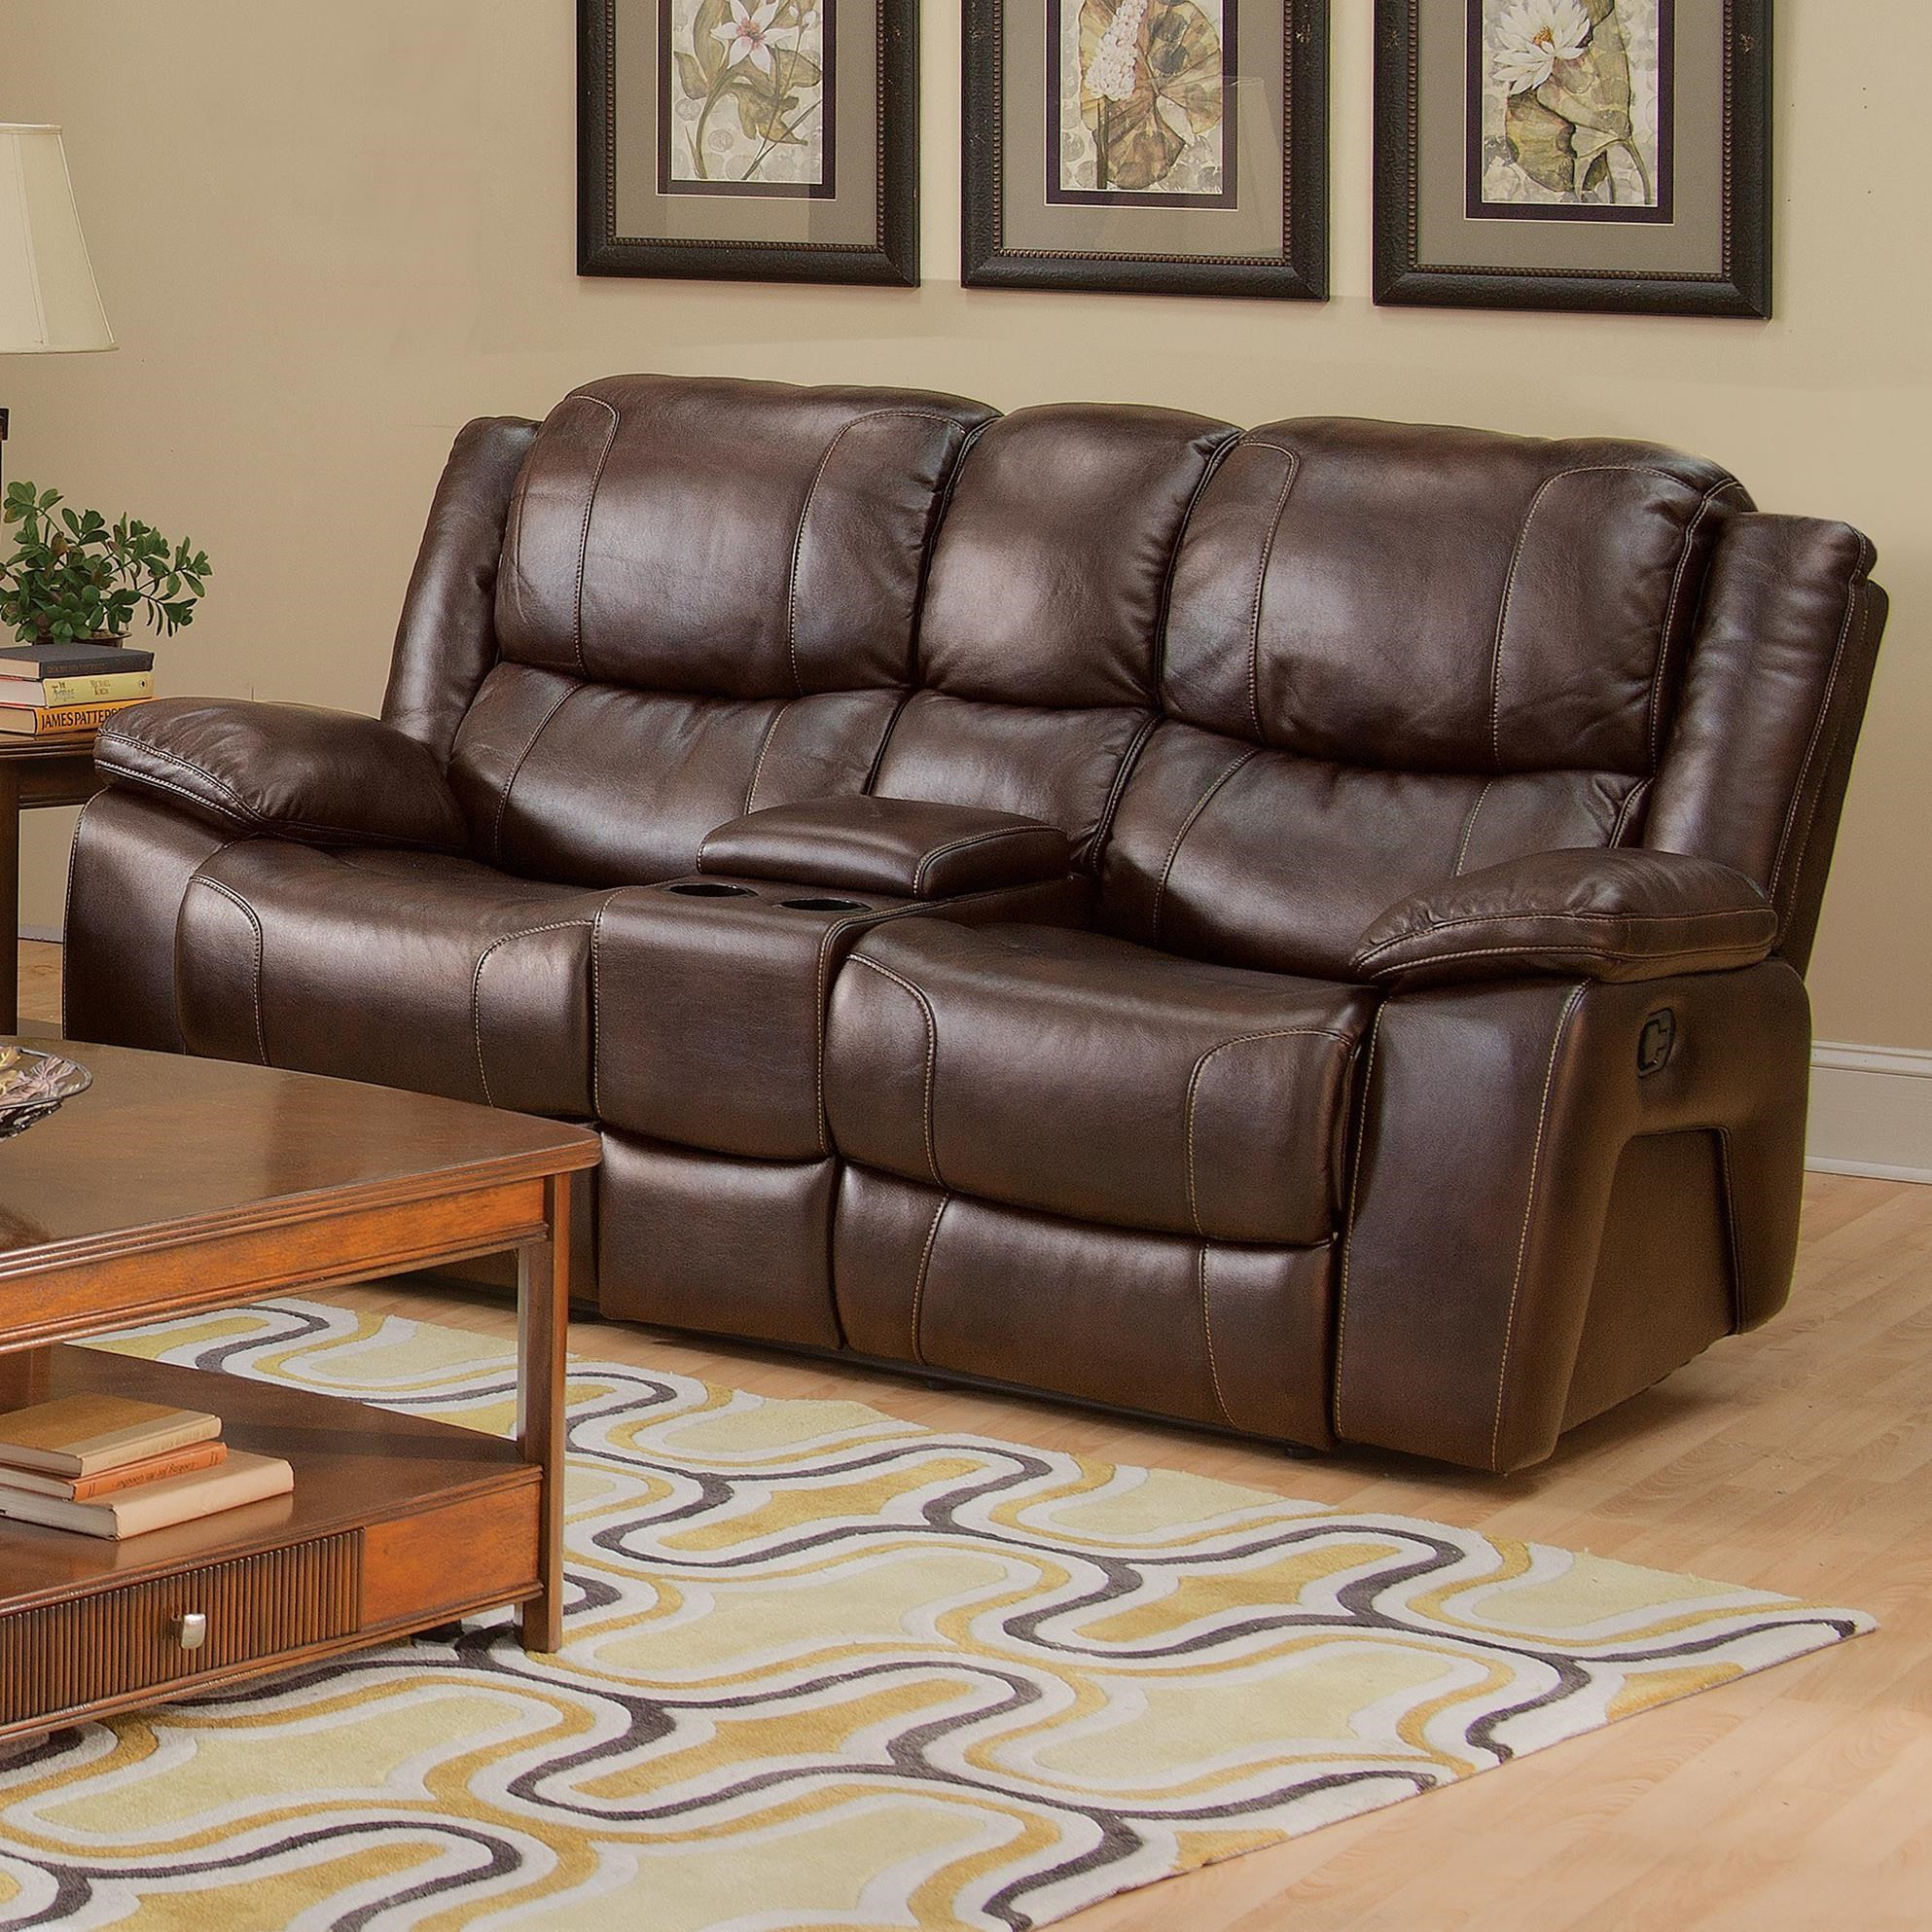 reclining loveseat may not represent features indicated - Loveseat Recliners